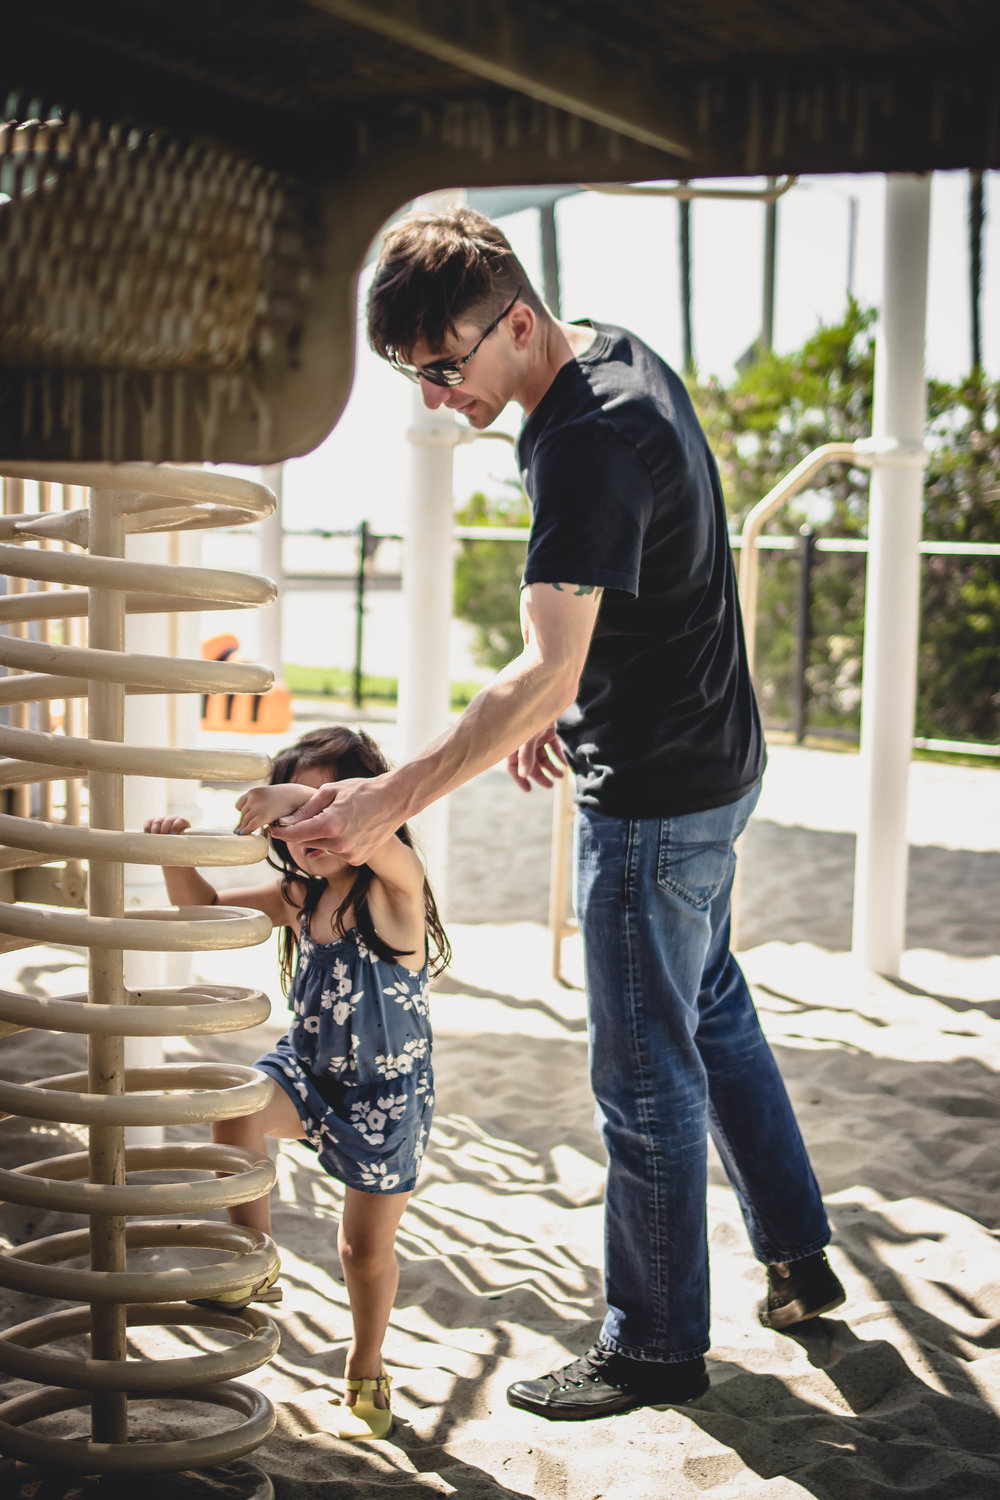 Daddy and Selah at Santa monica Beach playground | from scratch, mostly